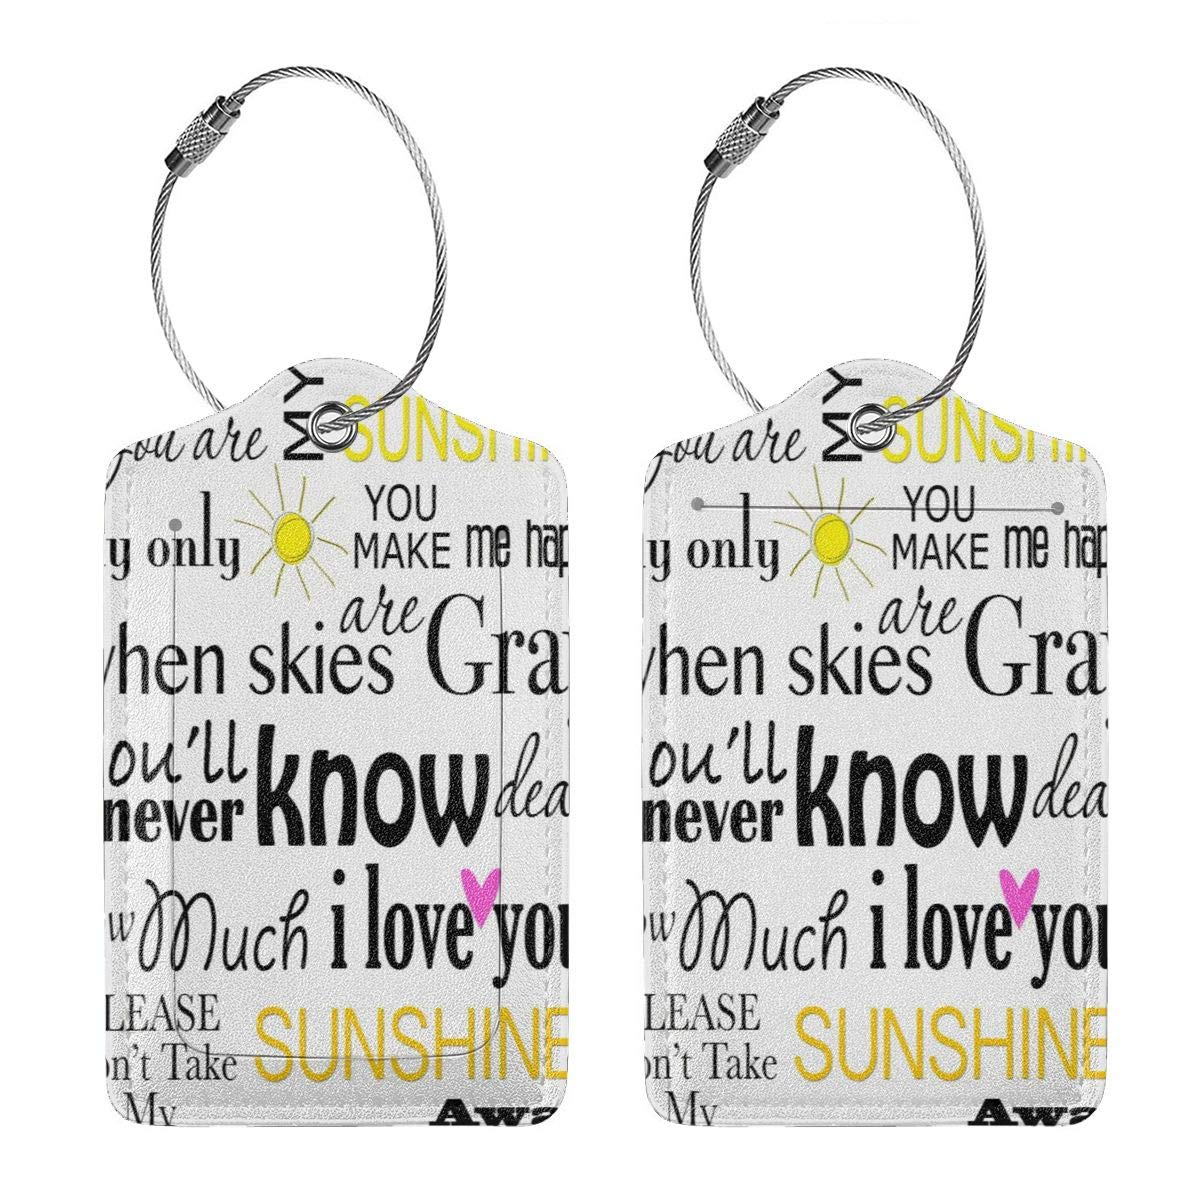 You Are My Sunshine Travel Luggage Tags With Full Privacy Cover Leather Case And Stainless Steel Loop